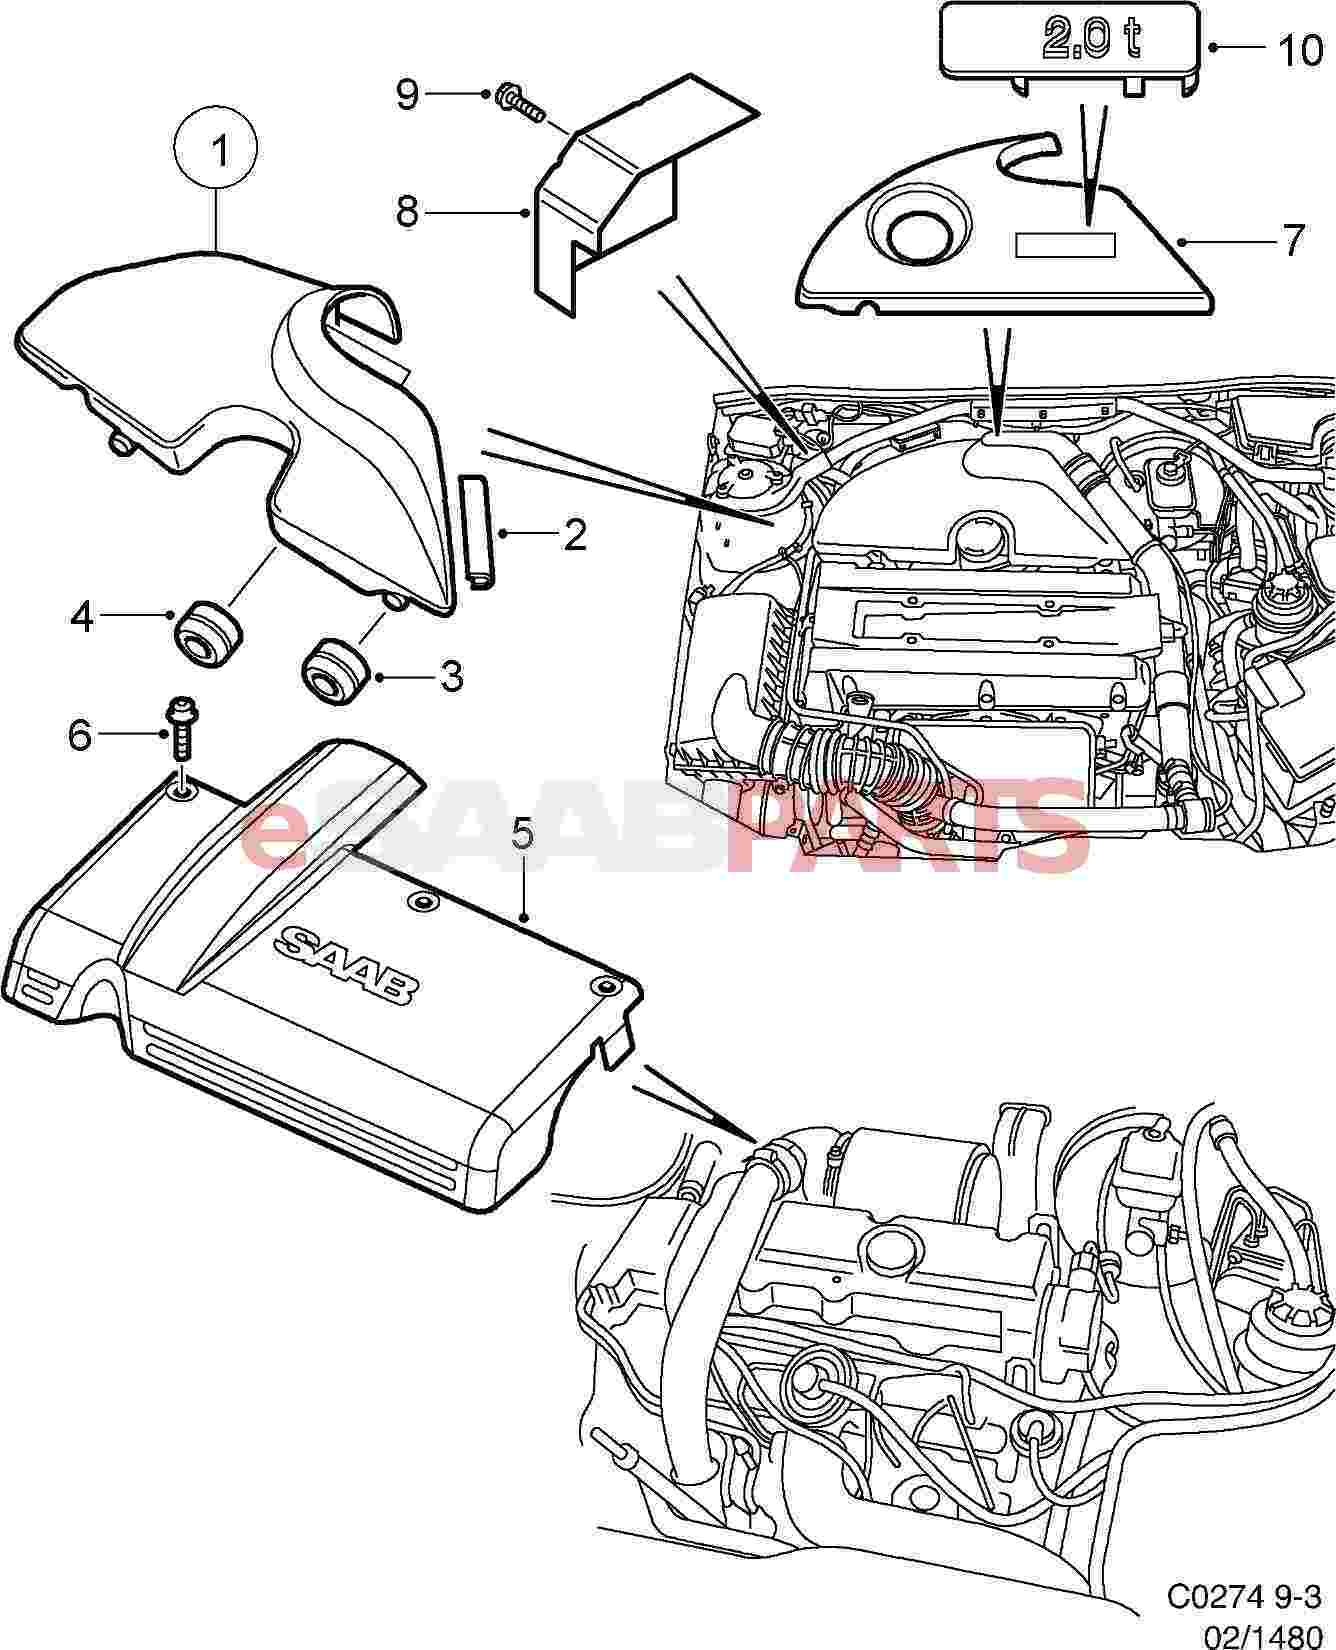 5956958 saab engine cover genuine saab parts from esaabparts com rh esaabparts com 2000 saab 9 3 engine diagram 2007 saab 9-3 engine diagram